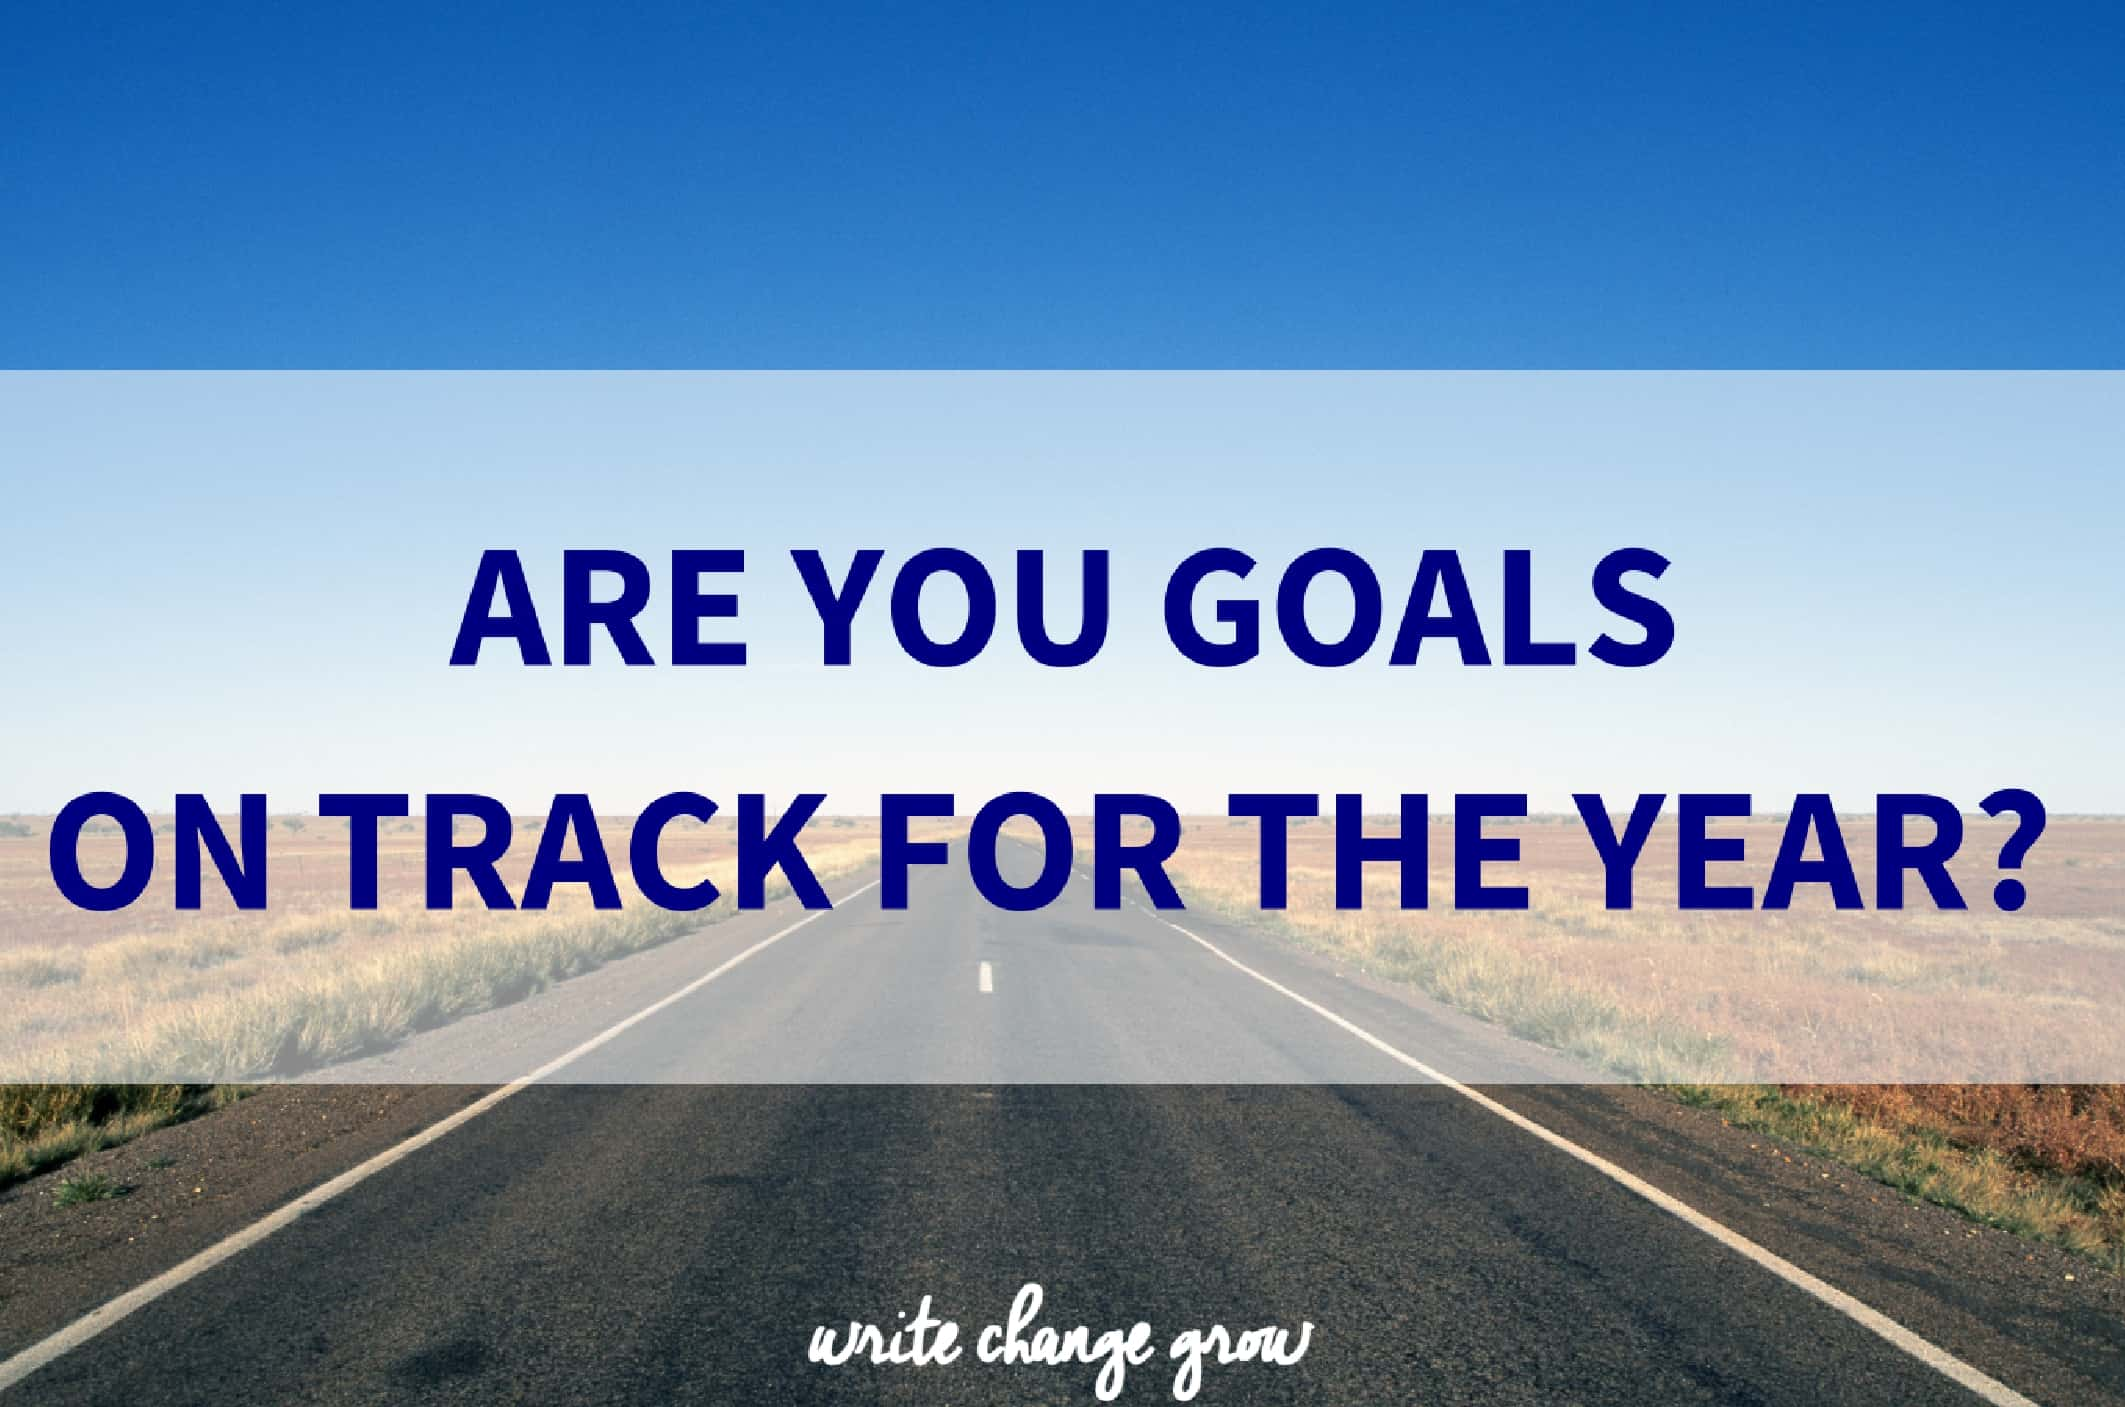 Time to assess how your goals are going for the year.